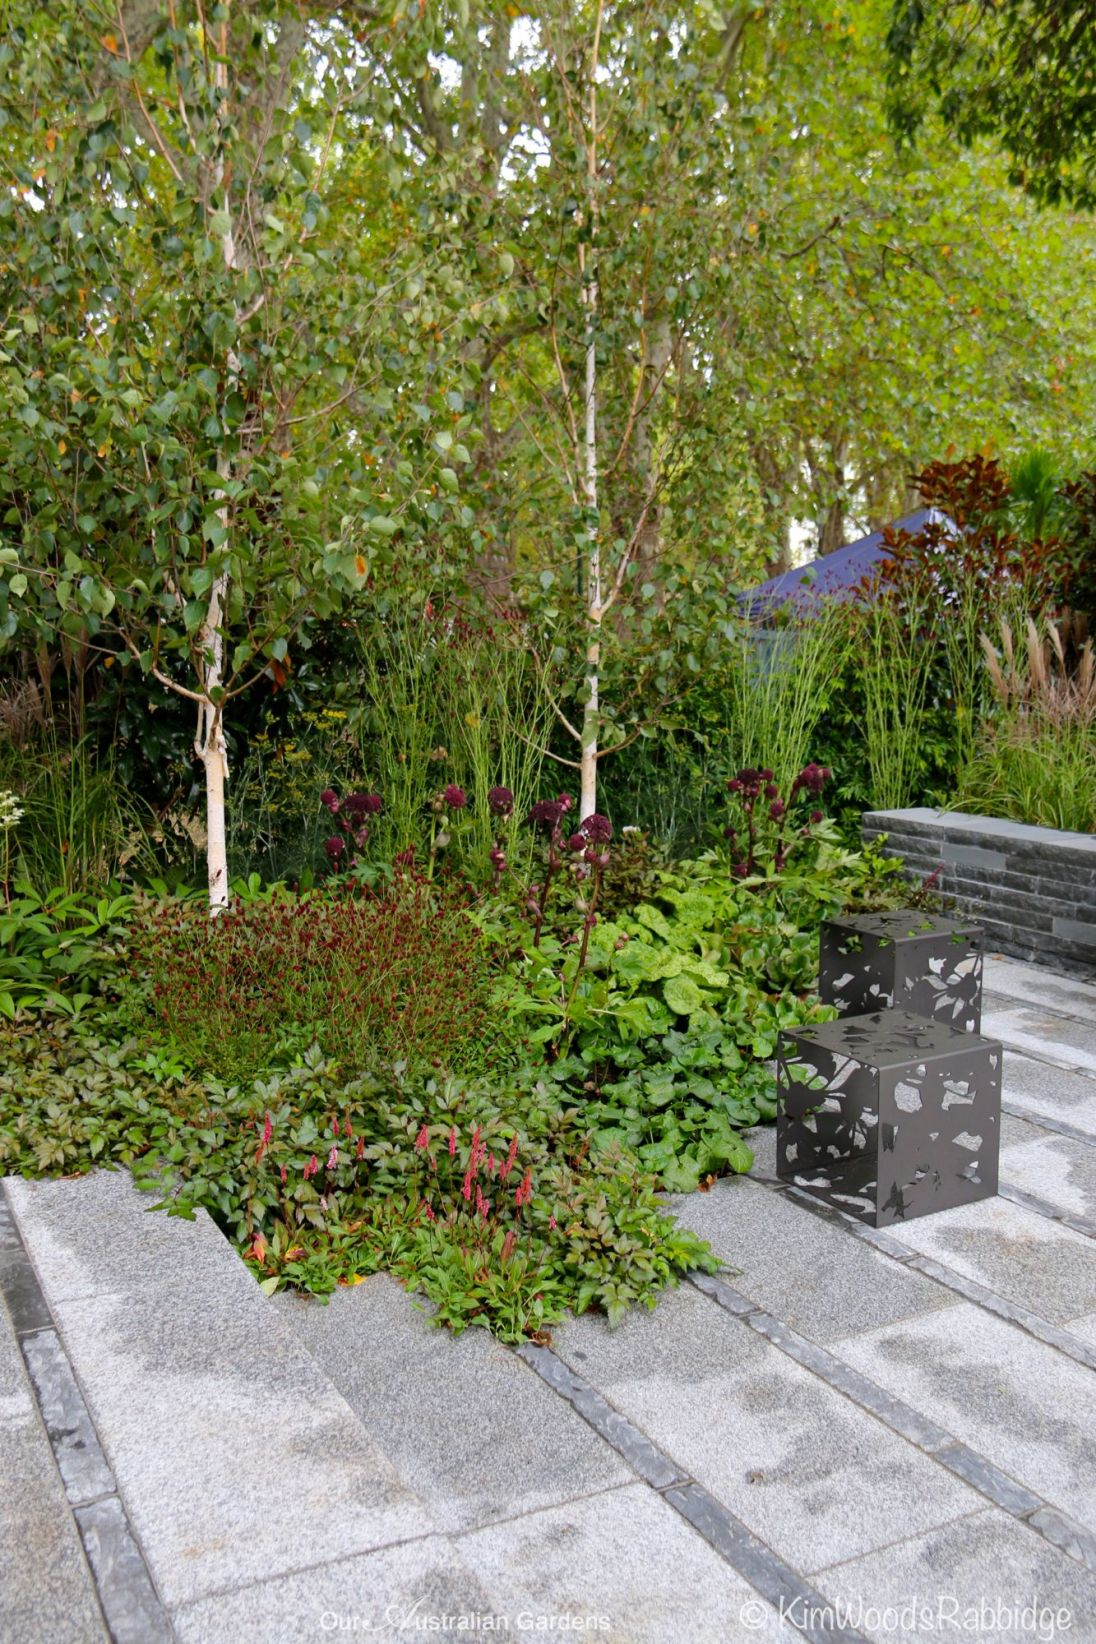 'Granito Grey' paving interspersed with strips of bluestone.